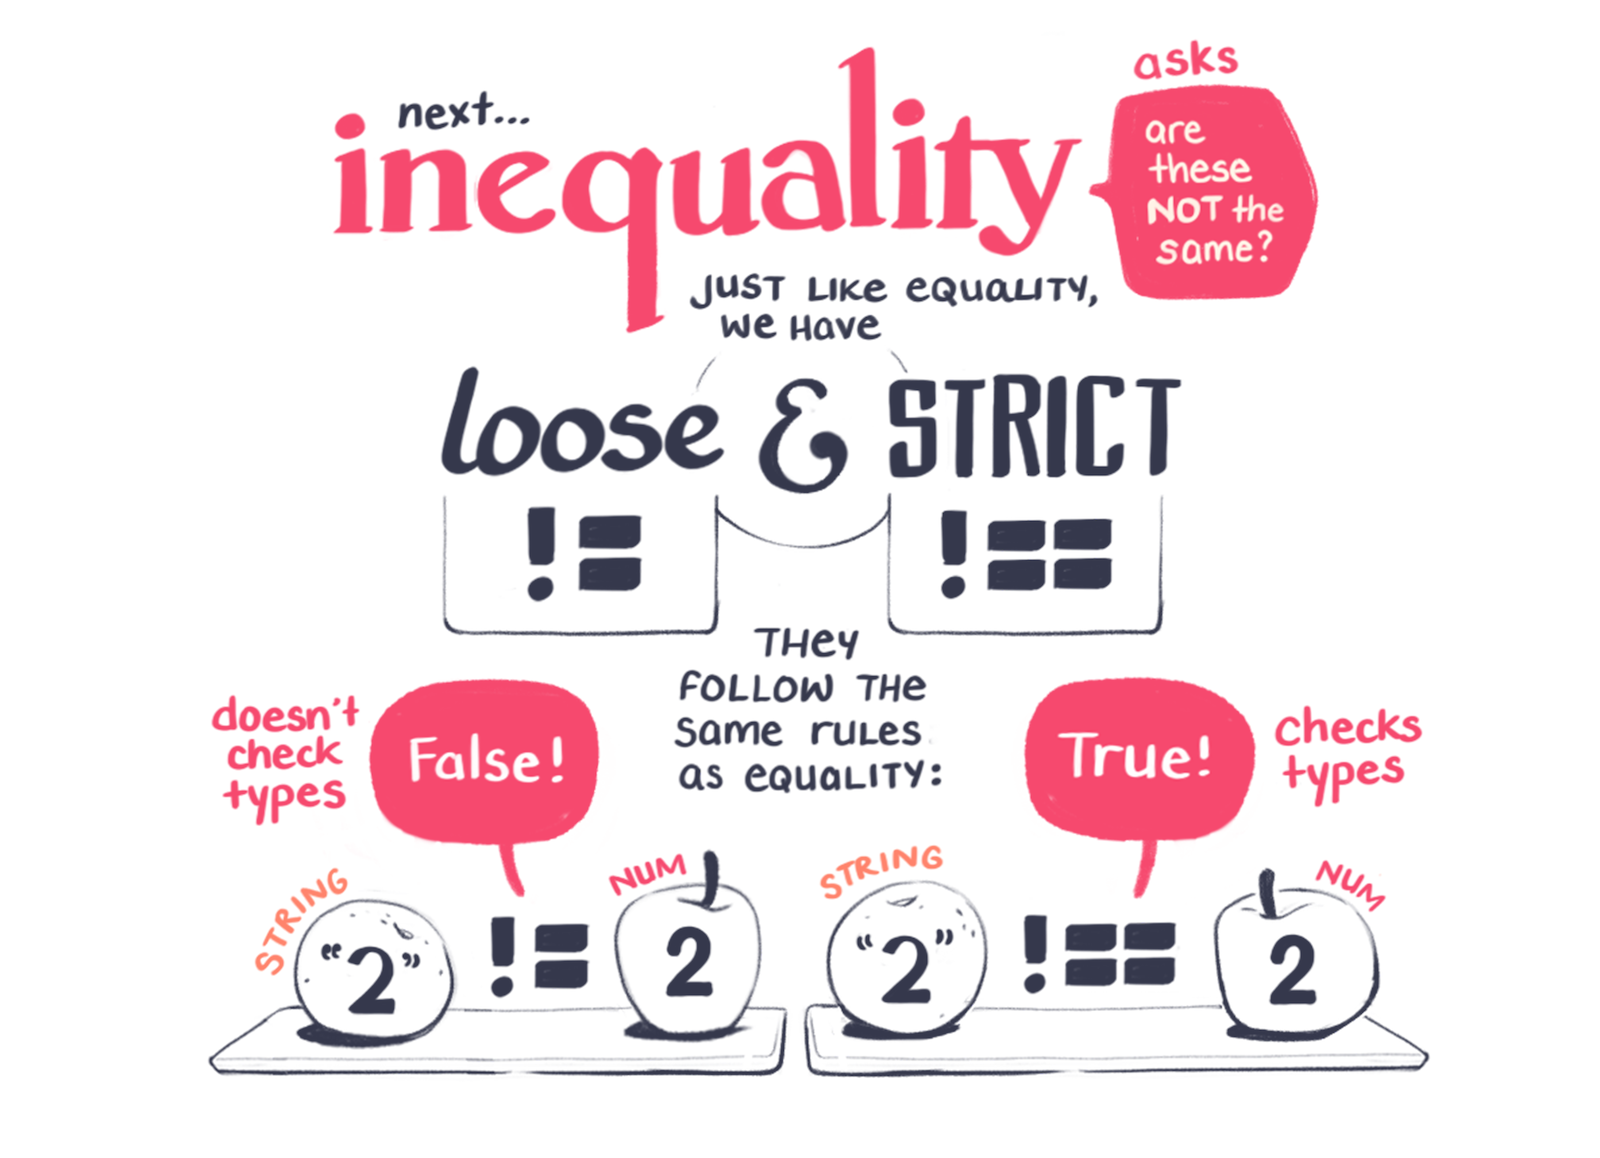 Inequality follows the same loose and strict rules as equality